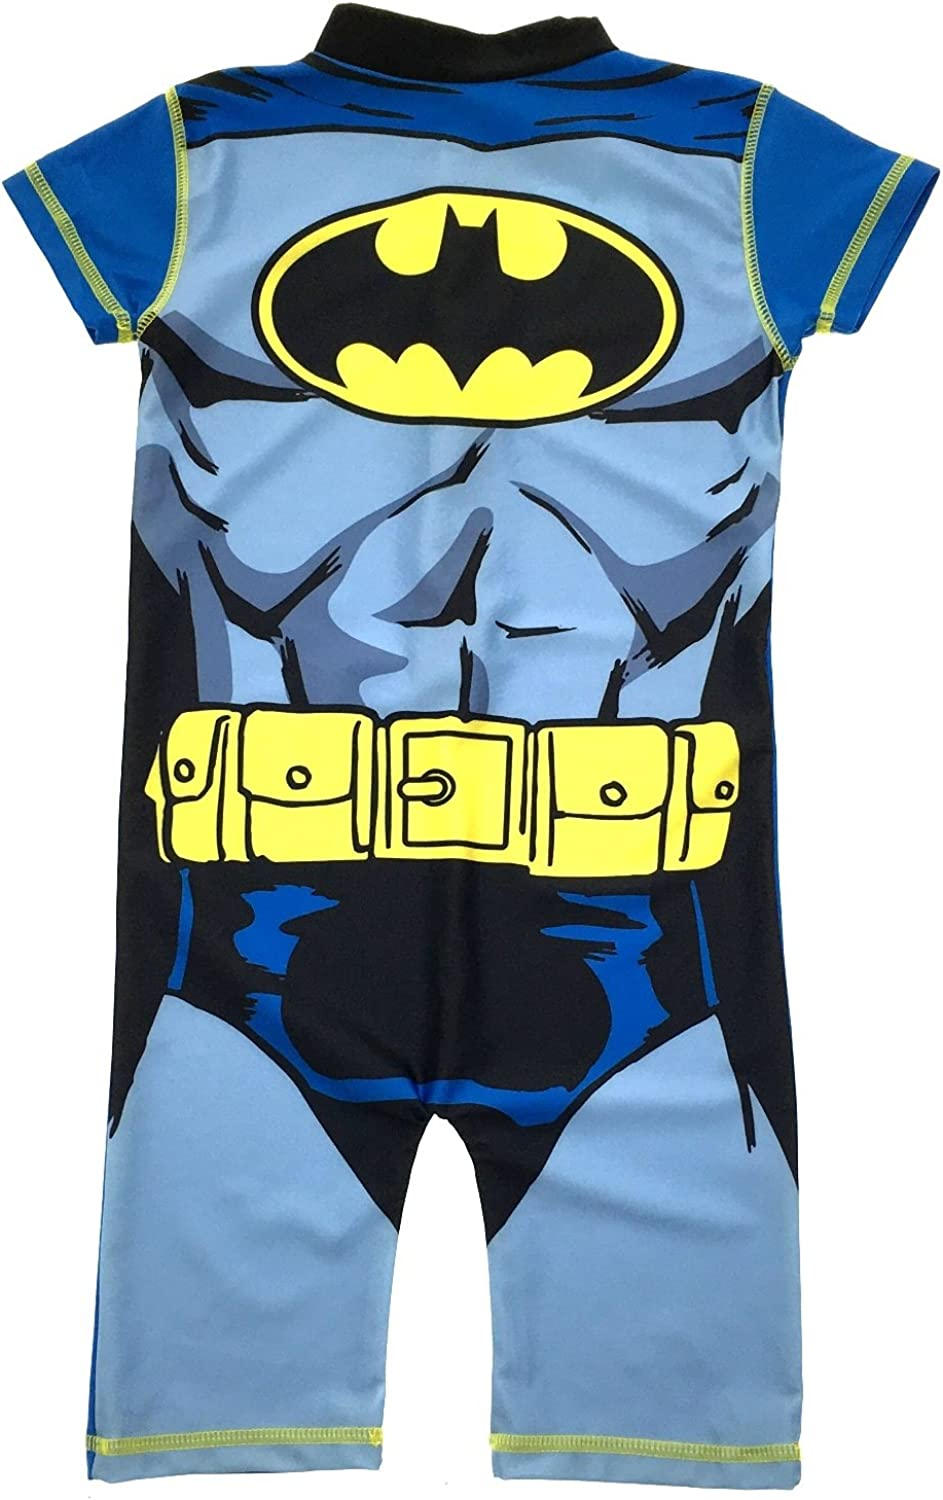 Ultra Violet Protection UPF Protection 50+ Sun Protection Fabric Baby Toddler Young Boys Cartoon Sunsuit Swimsuit